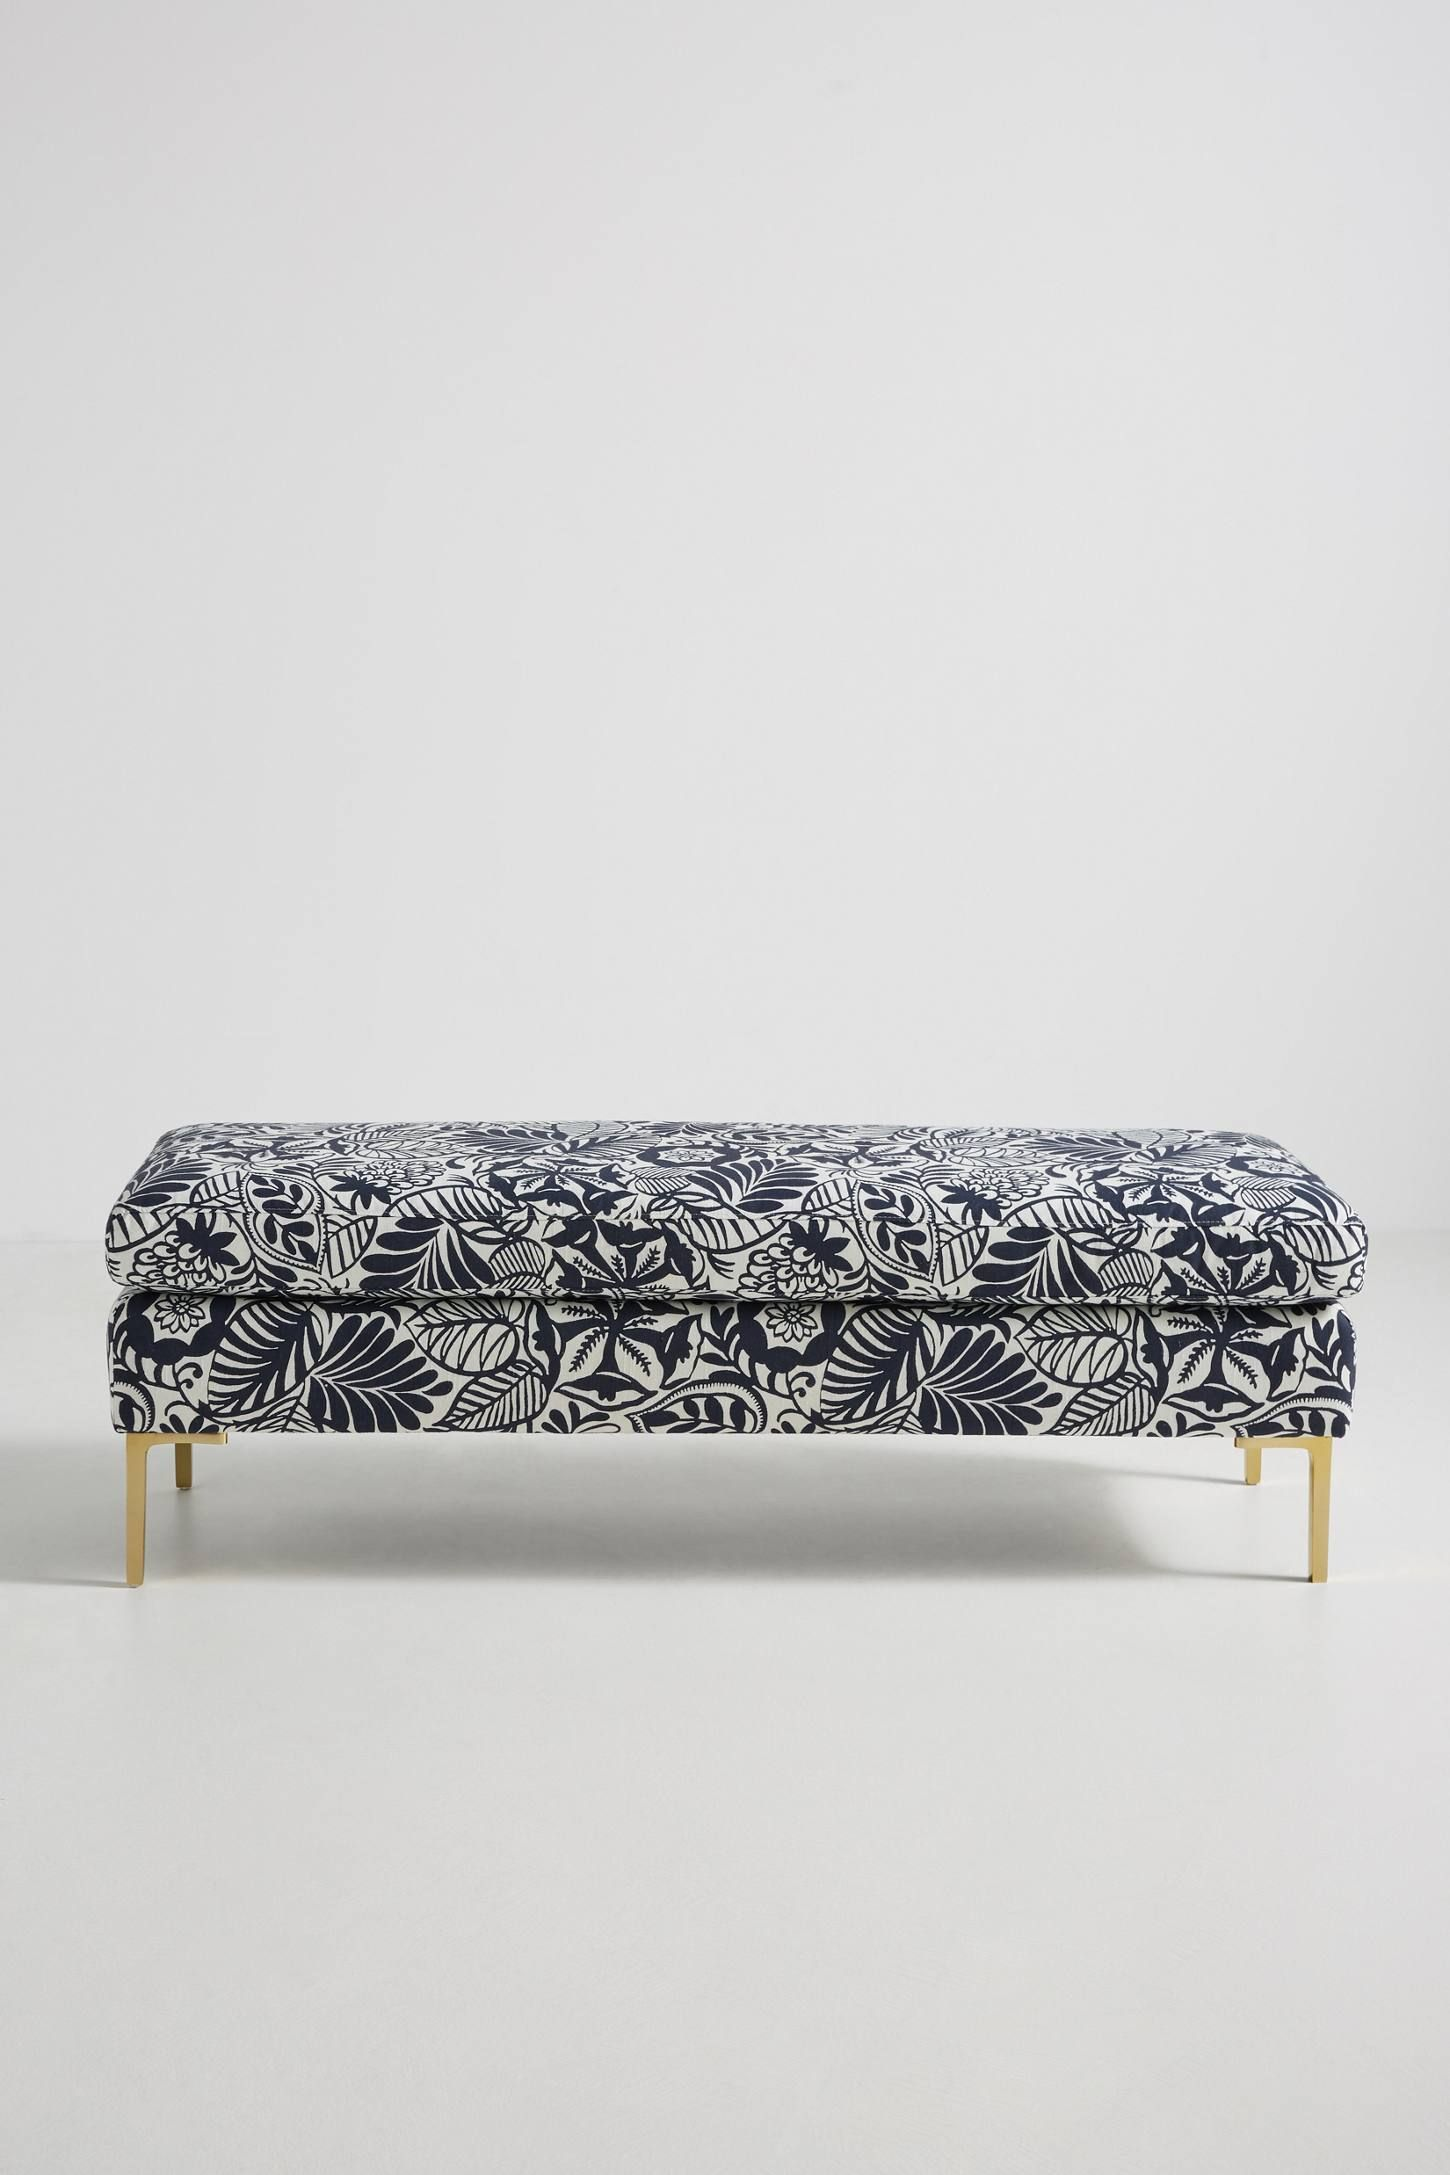 Tremendous Kaia Printed Edlyn Bench In 2019 Catharine Larchmont Home Ibusinesslaw Wood Chair Design Ideas Ibusinesslaworg